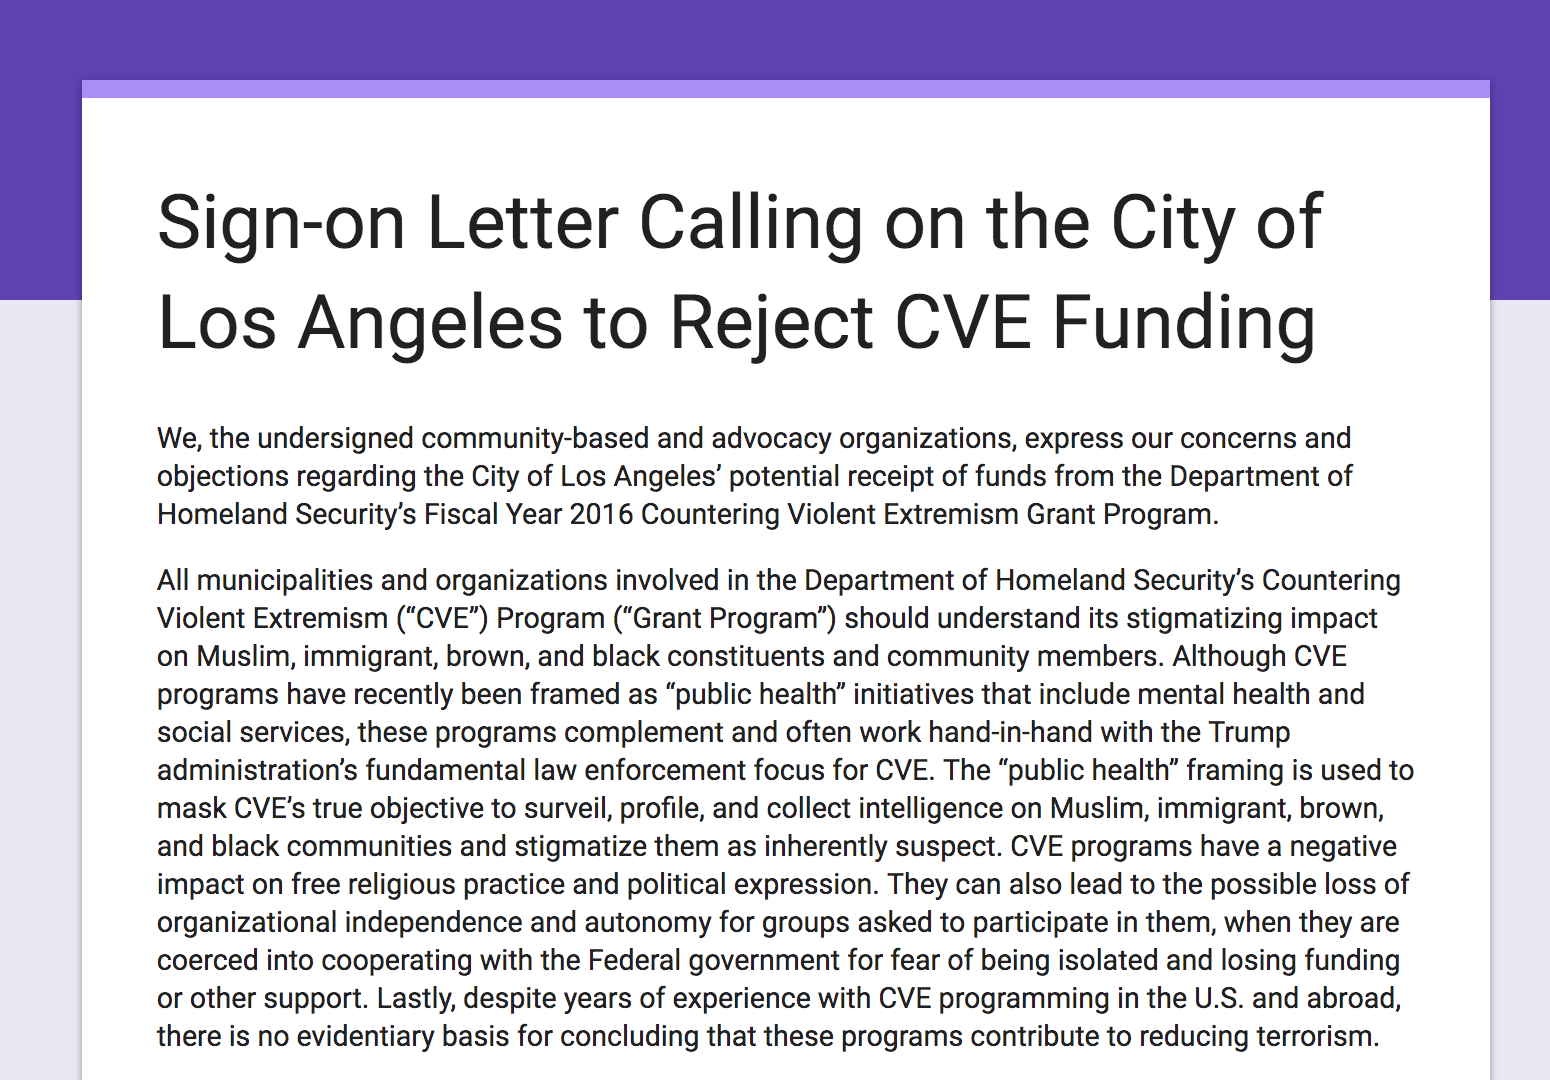 Organizational Sign On Letter - The Council on American Islamic Relations - Los Angeles in partnership with a coalition of organizations circulated an organizational sign on letter with a response of over 60+ orgs signing on. This letter was presented to LA City Council.